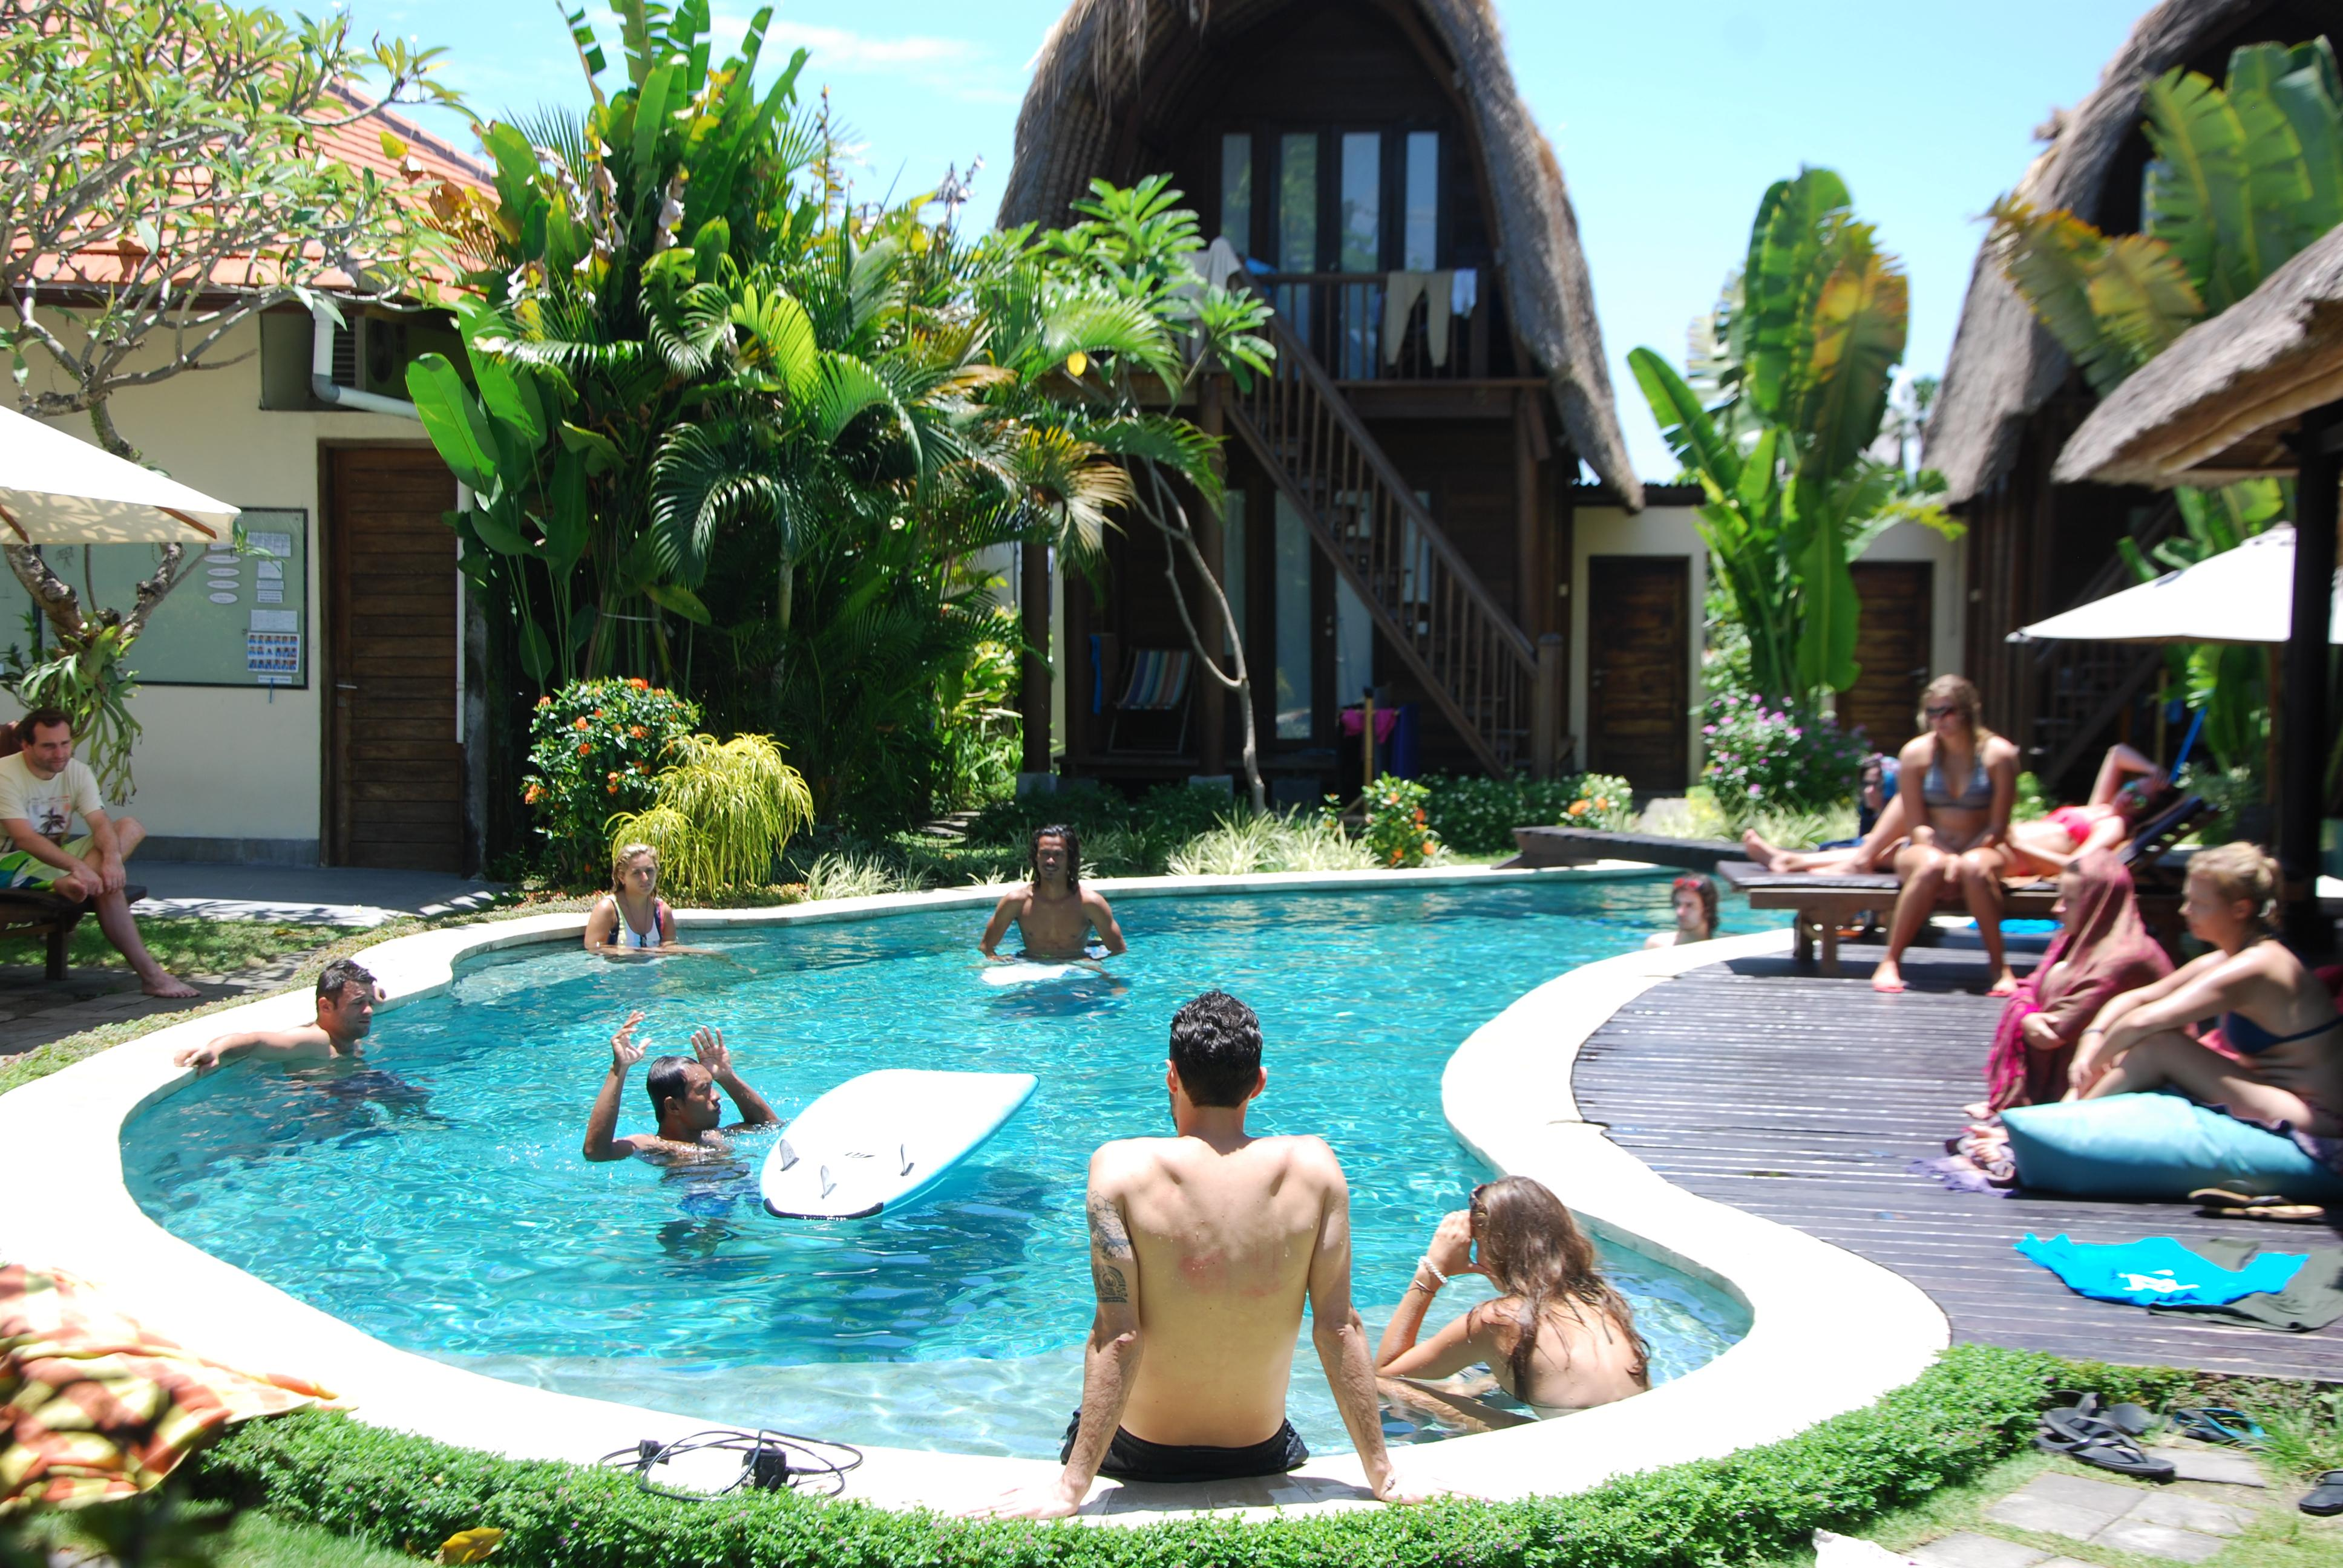 SurfWG Bali surf camp – Beginners surf for free!